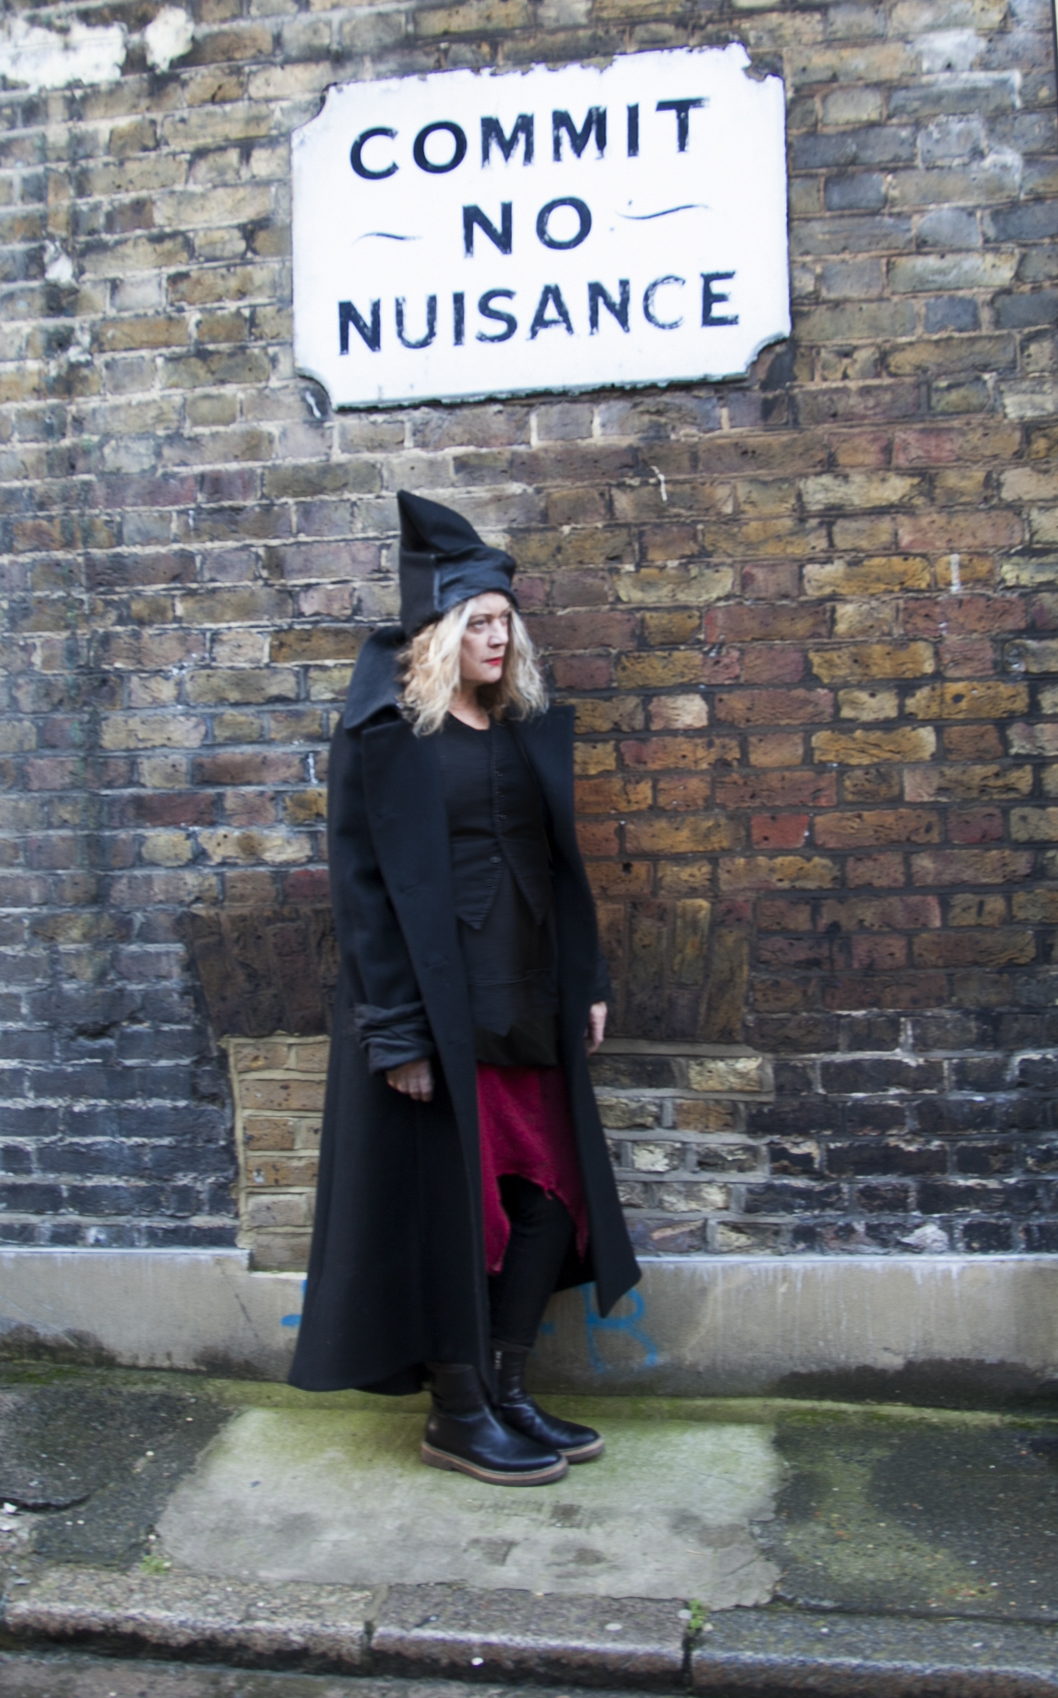 Alannah Currie Commits No Nuisance